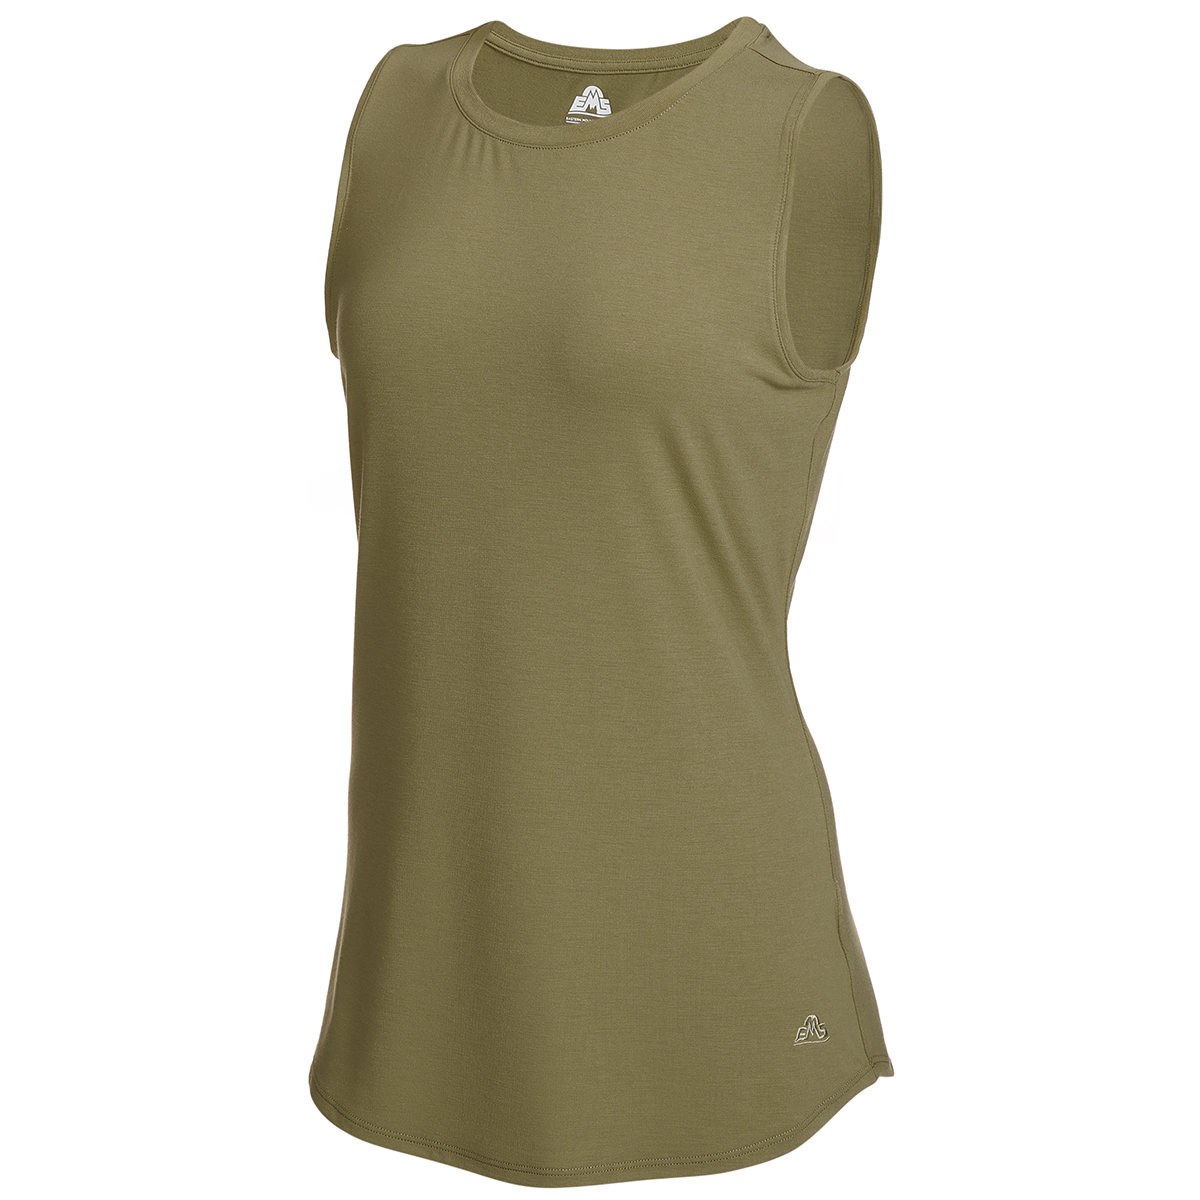 Ems Women's Highland Muscle Tank Top - Green, XS